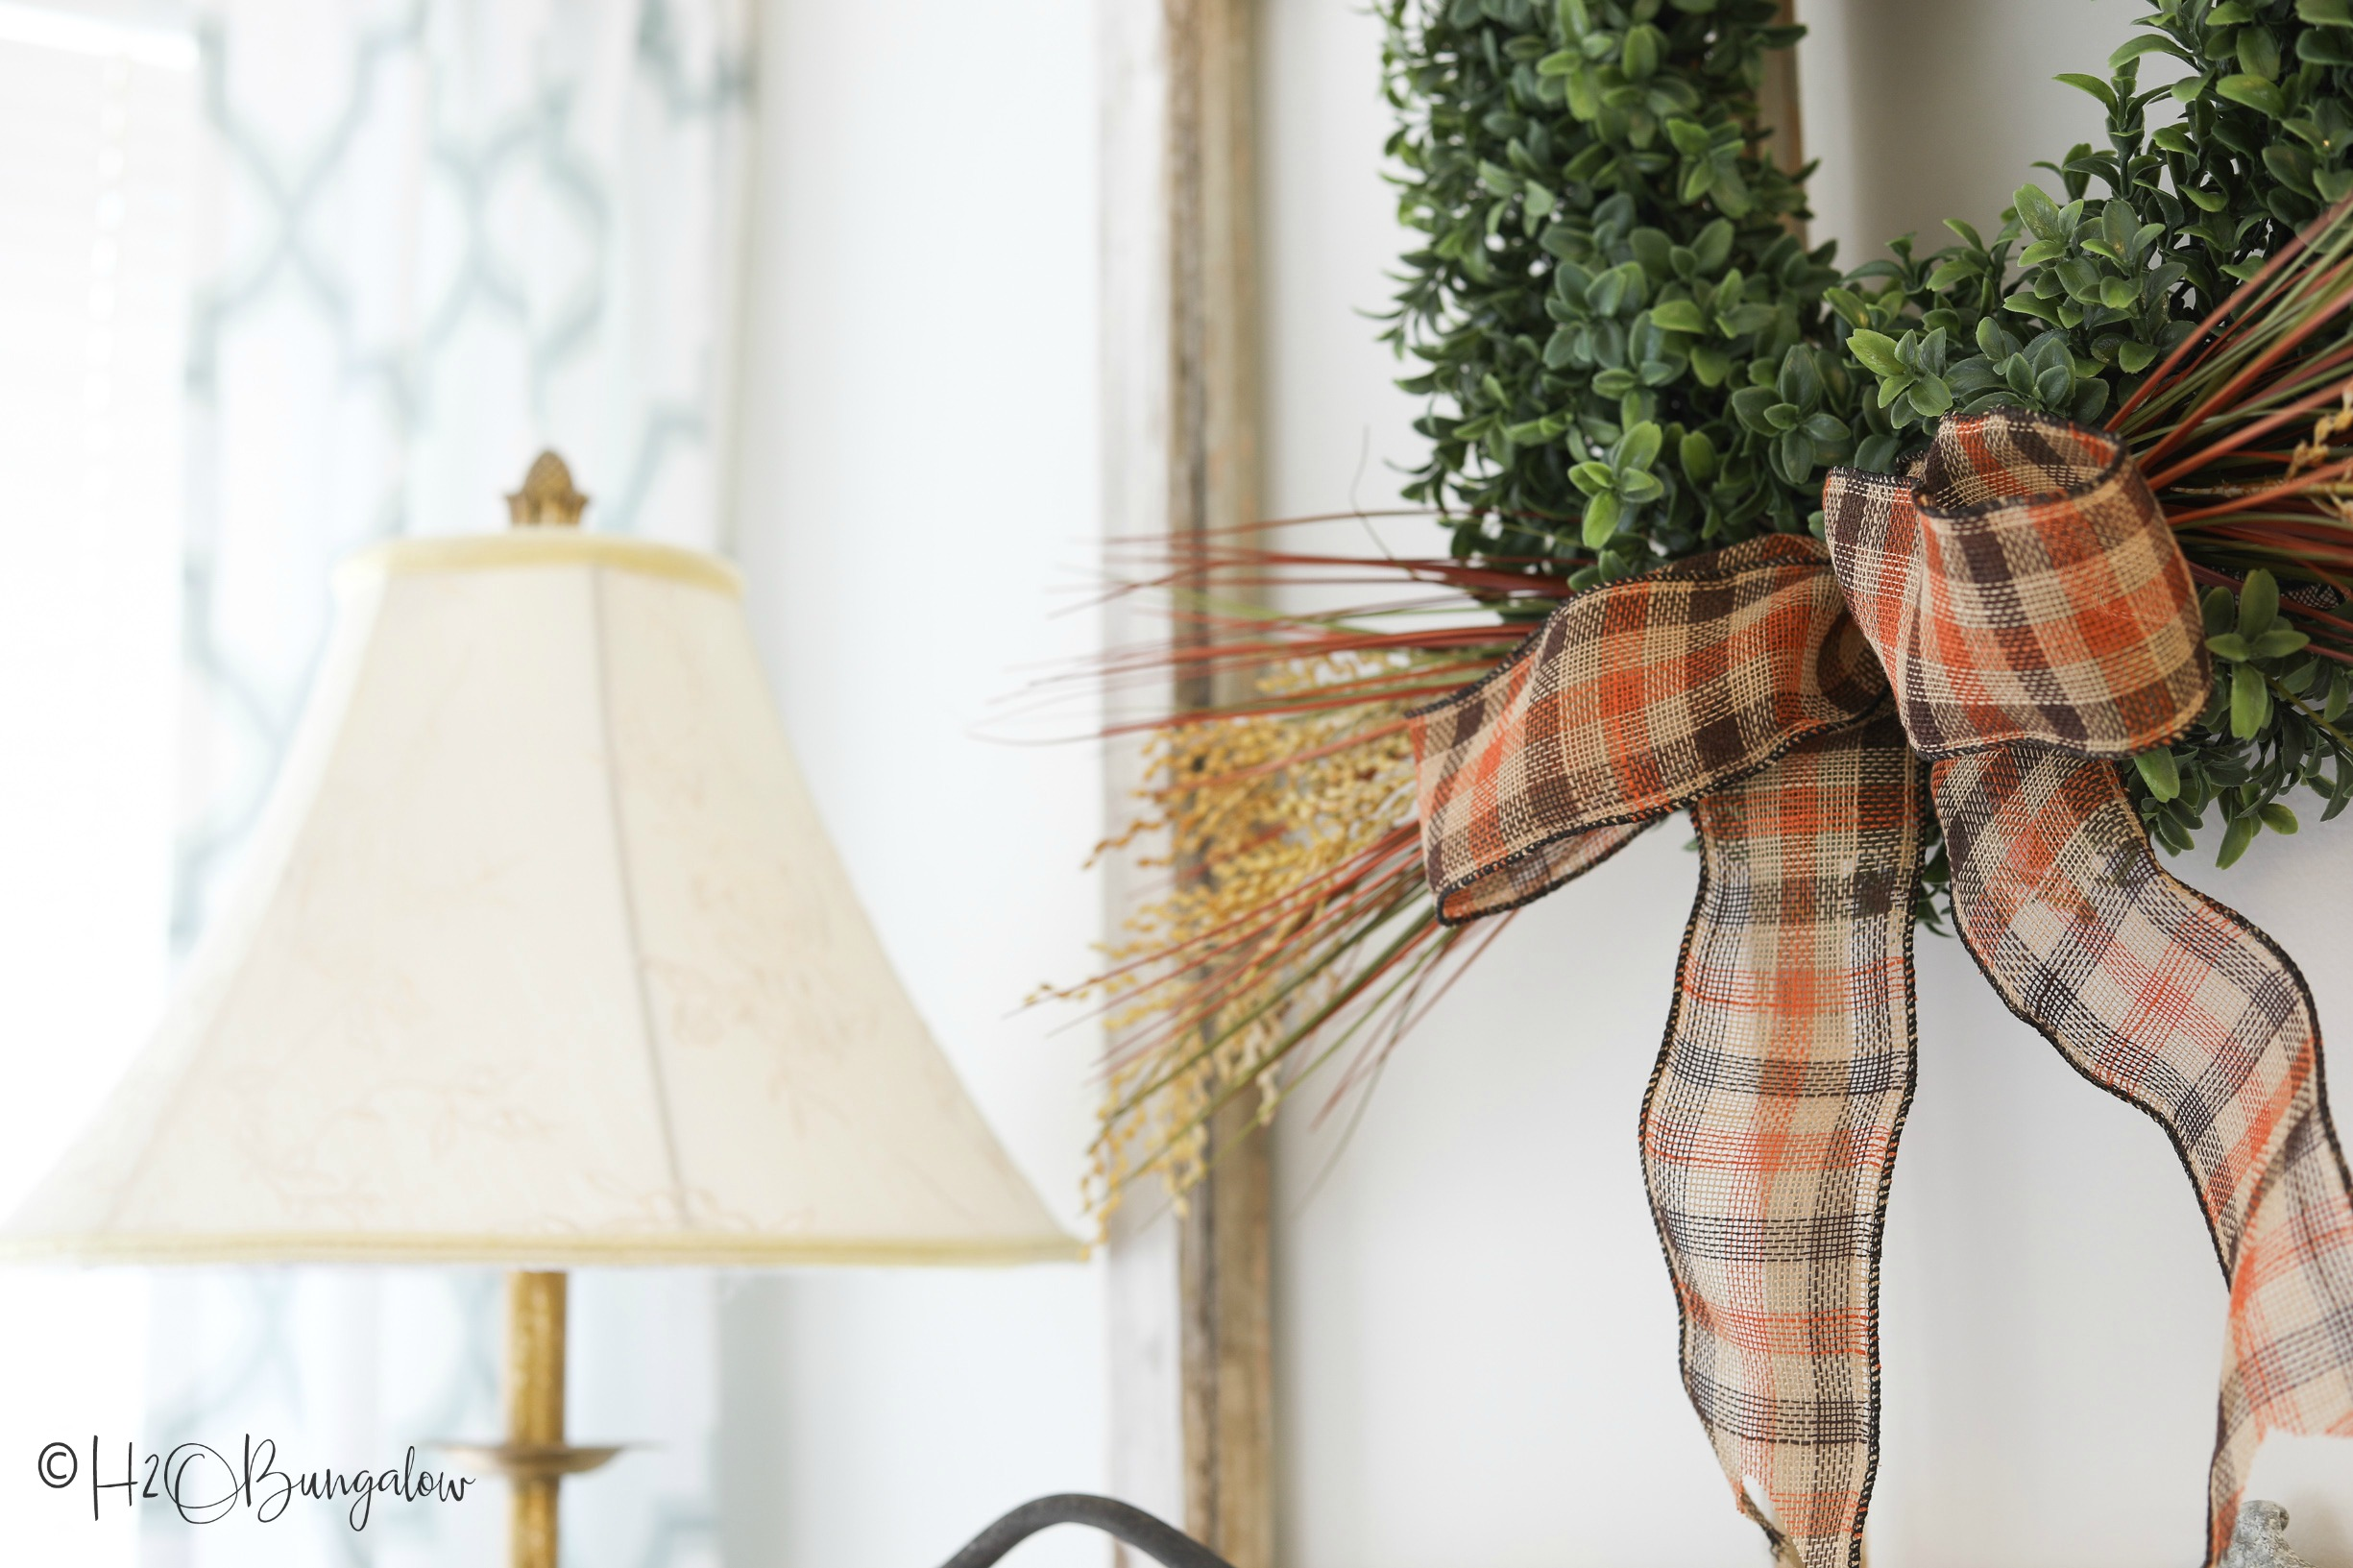 Make this easy fall boxwood wreath following my simple video tutorial. Quick and pretty fall decor for your front door or fireplace mantel.